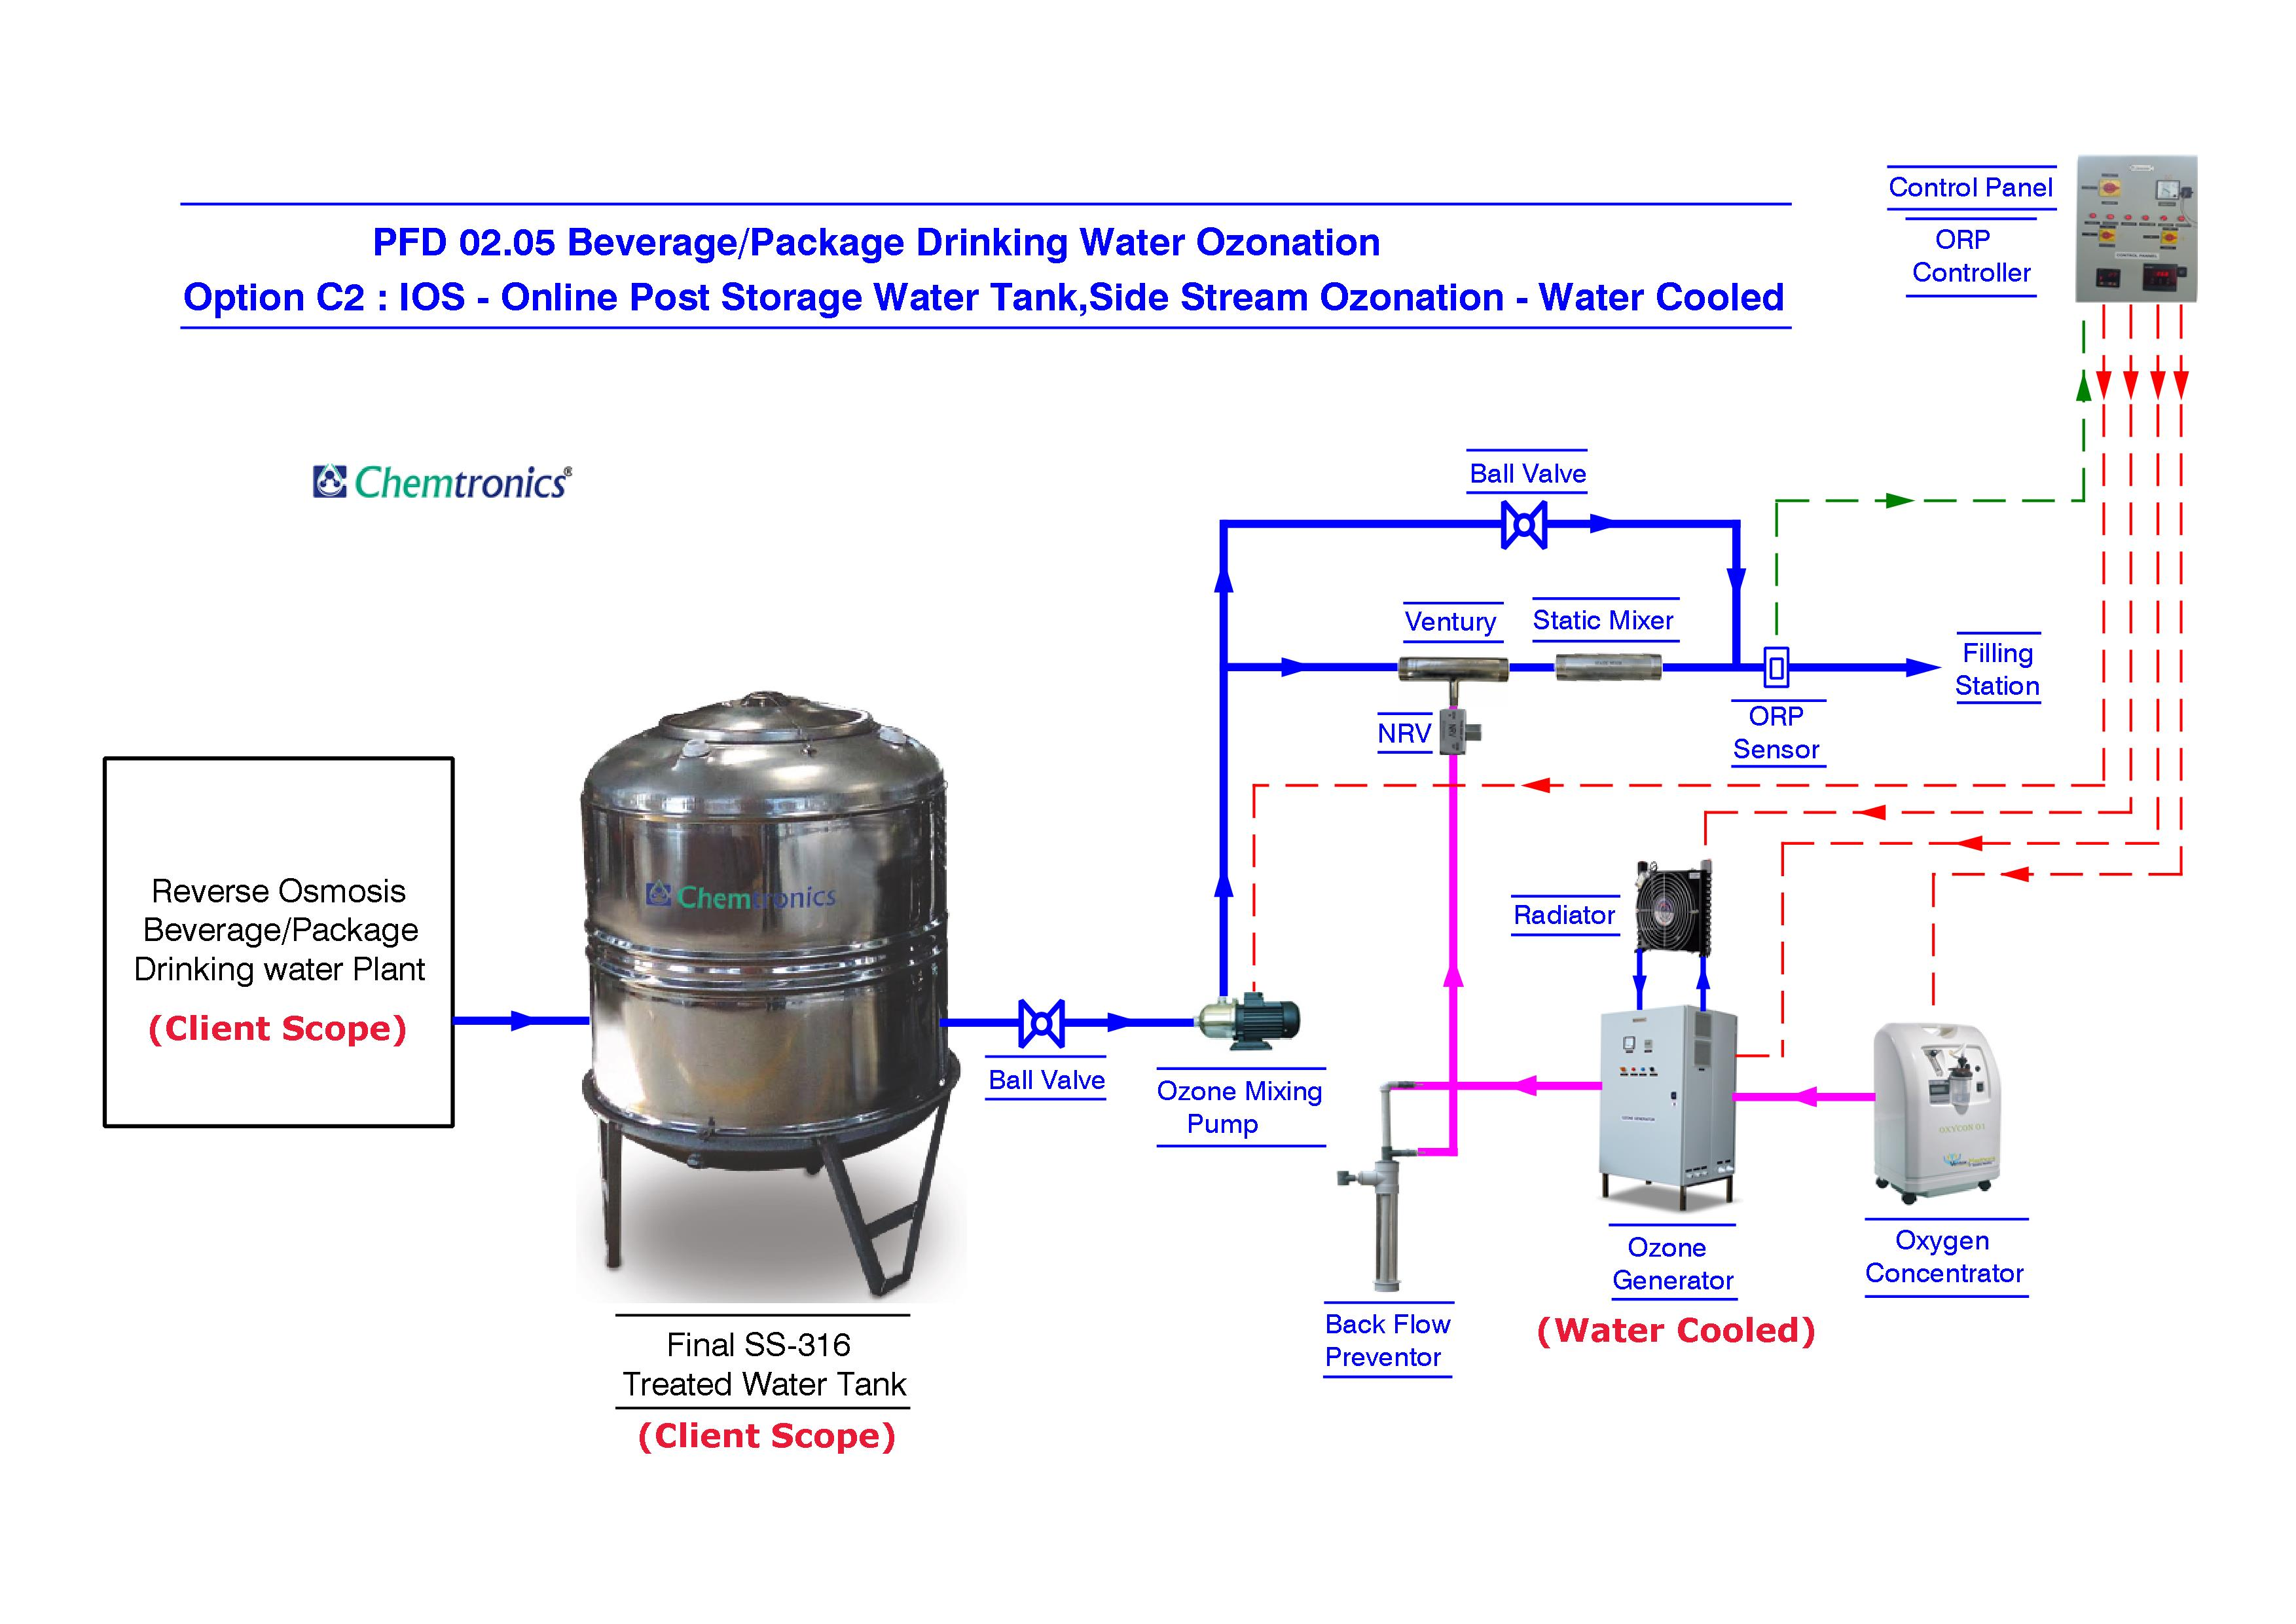 Ozonation Process Flow Diagrams Diagram Pfd Mumbai 0205 Option C2 Online Post Tank Water Cooled System For Package Drinking